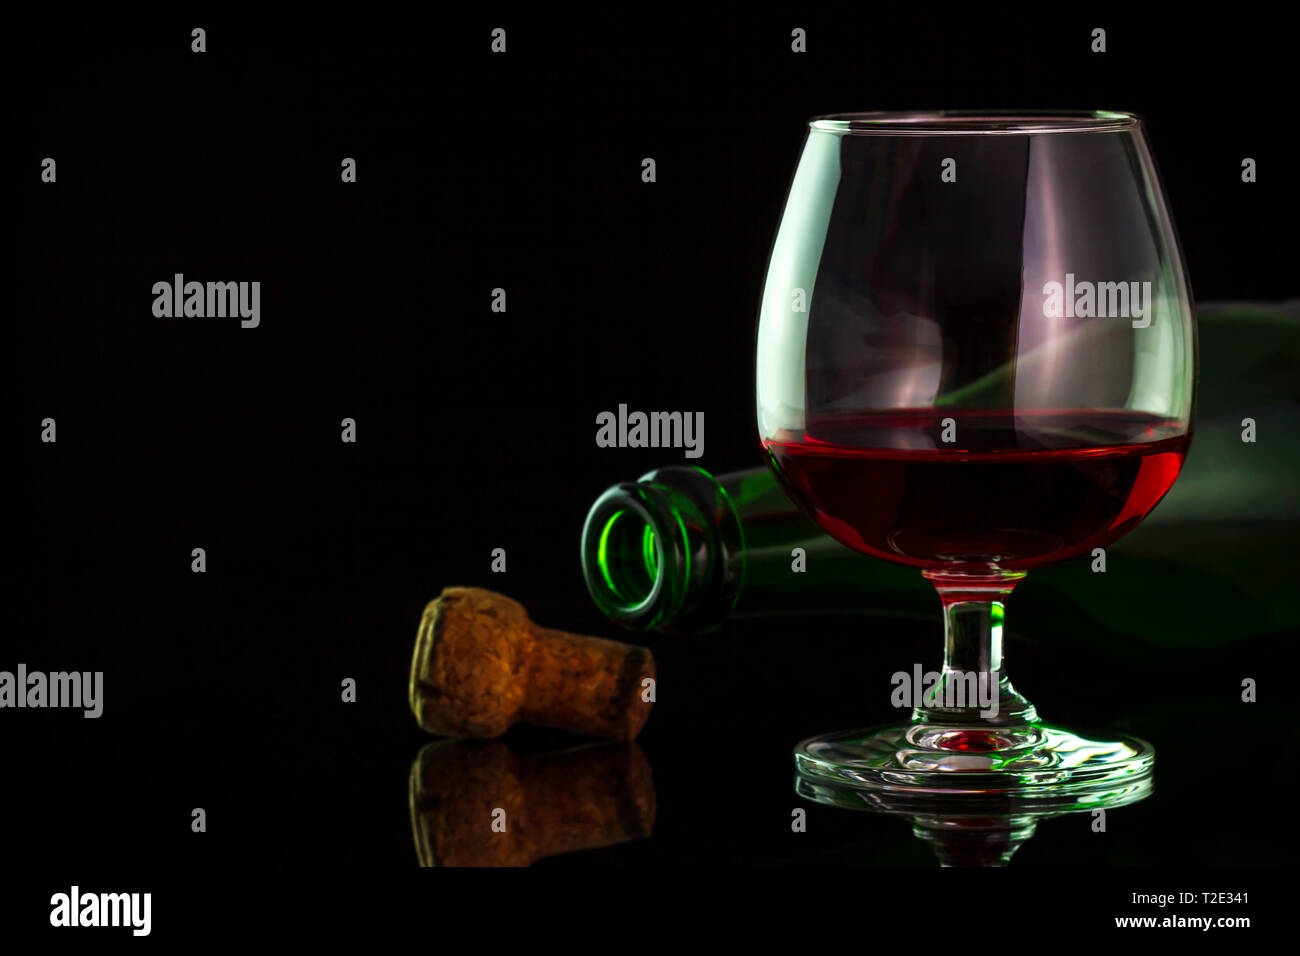 Red wine in glass and bottles on the table in darkness background. Copy space for text or articles. - Stock Image